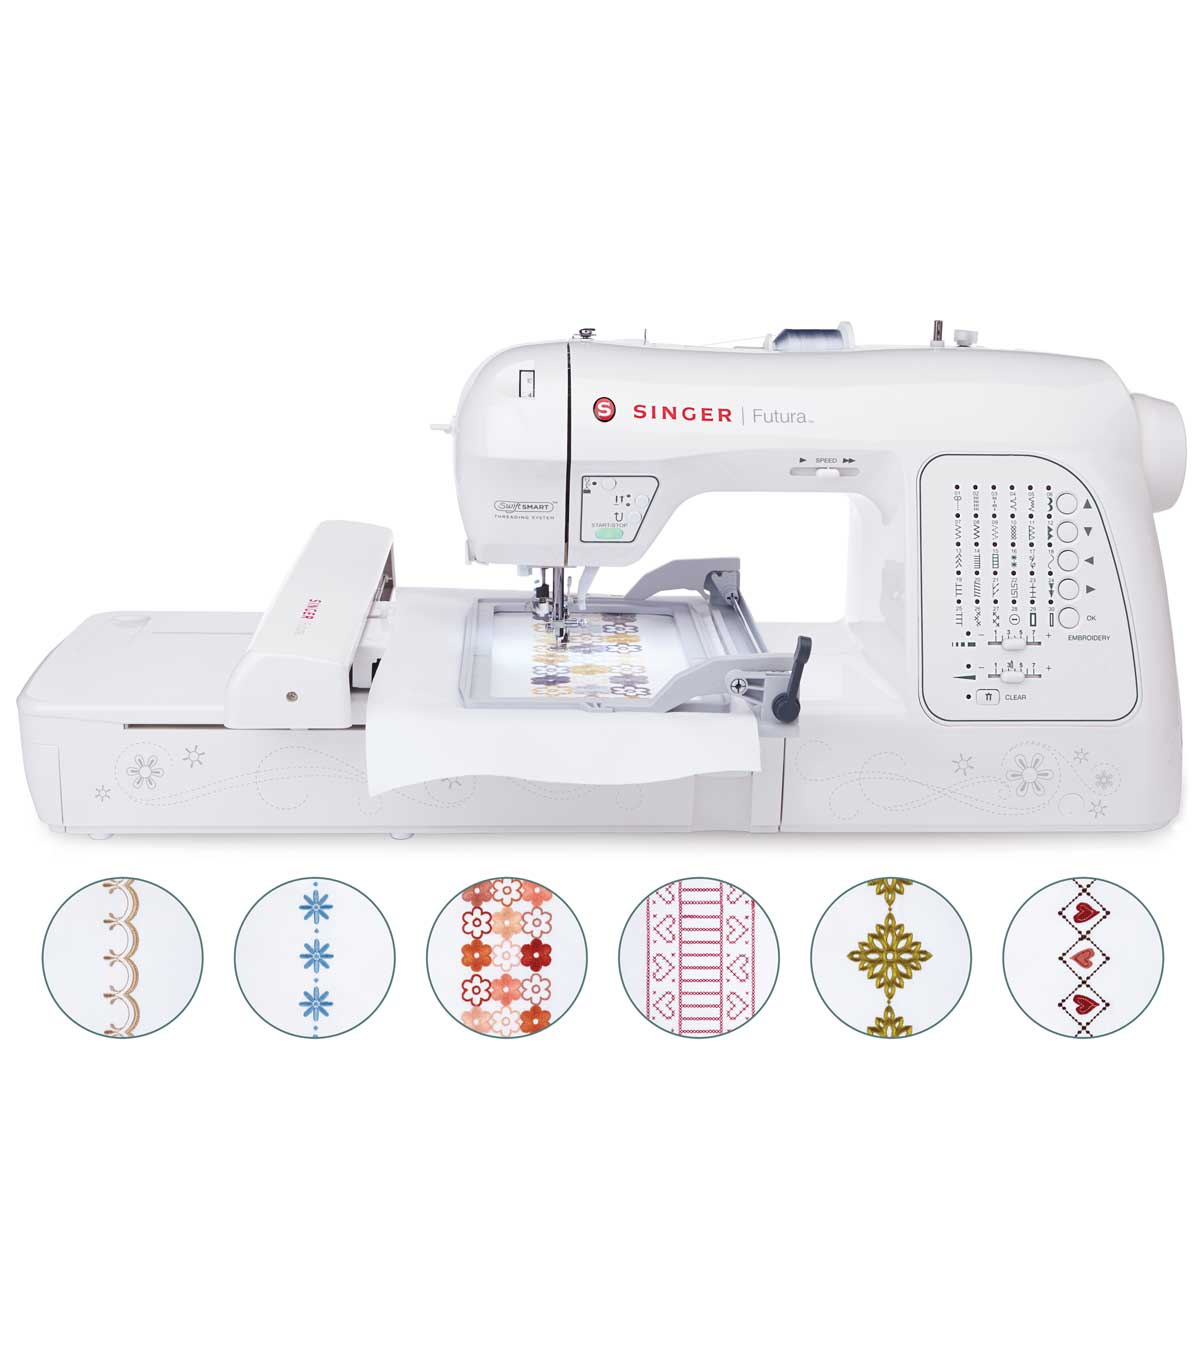 Singer Xl 420 Futura Embroidery Sewing Machine Joann